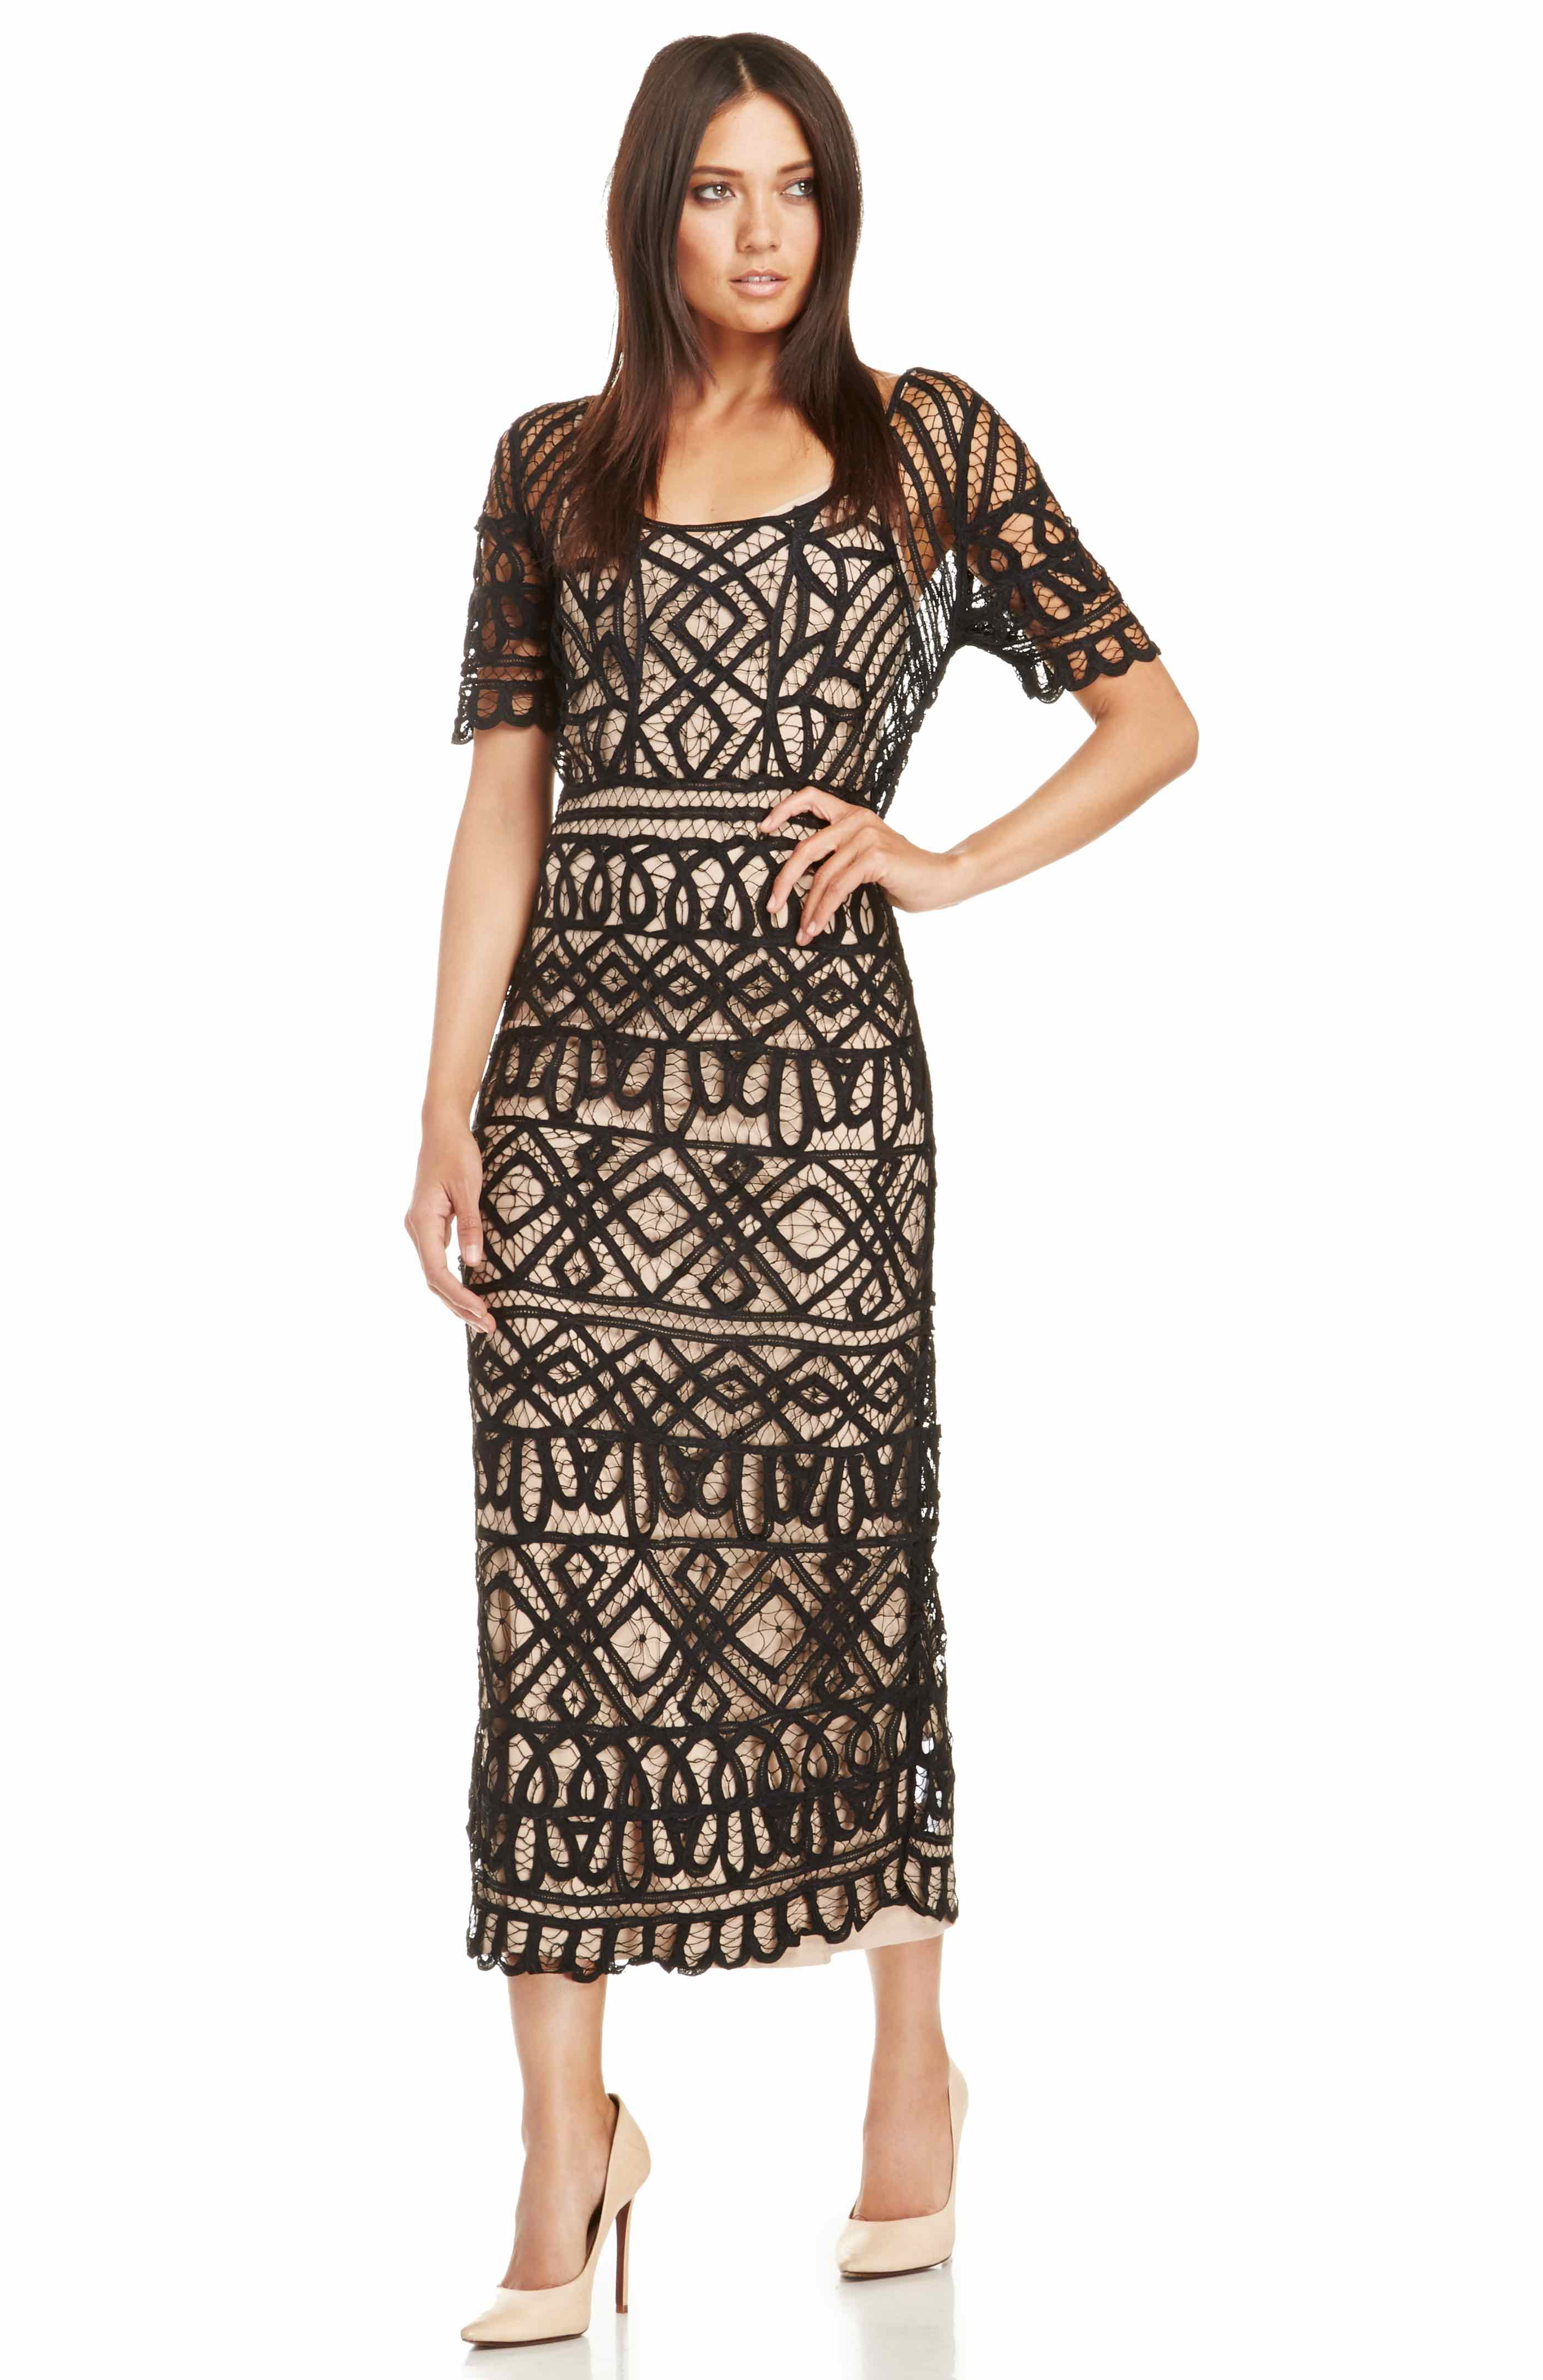 Stone Cold Fox Denver Lace Dress in Black | DAILYLOOK